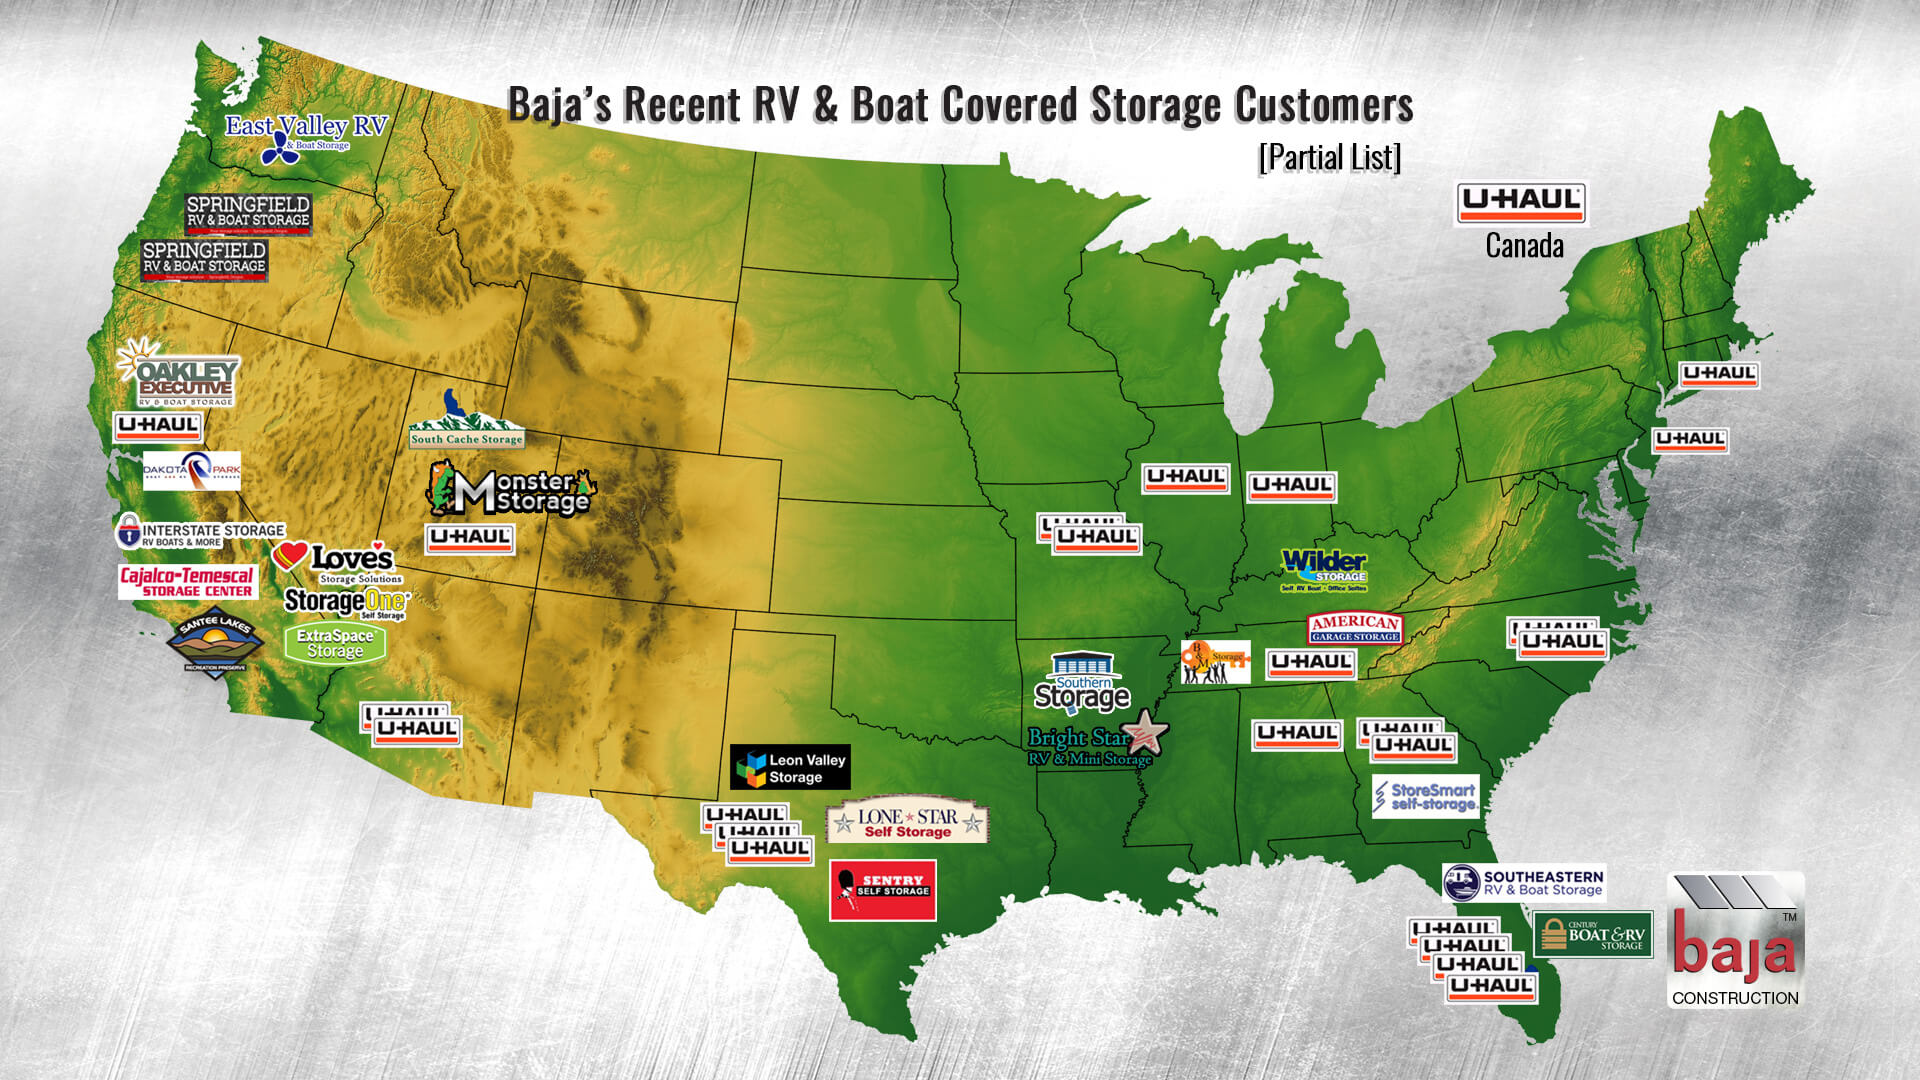 there is a shortage of covered rv and boat business nationwide